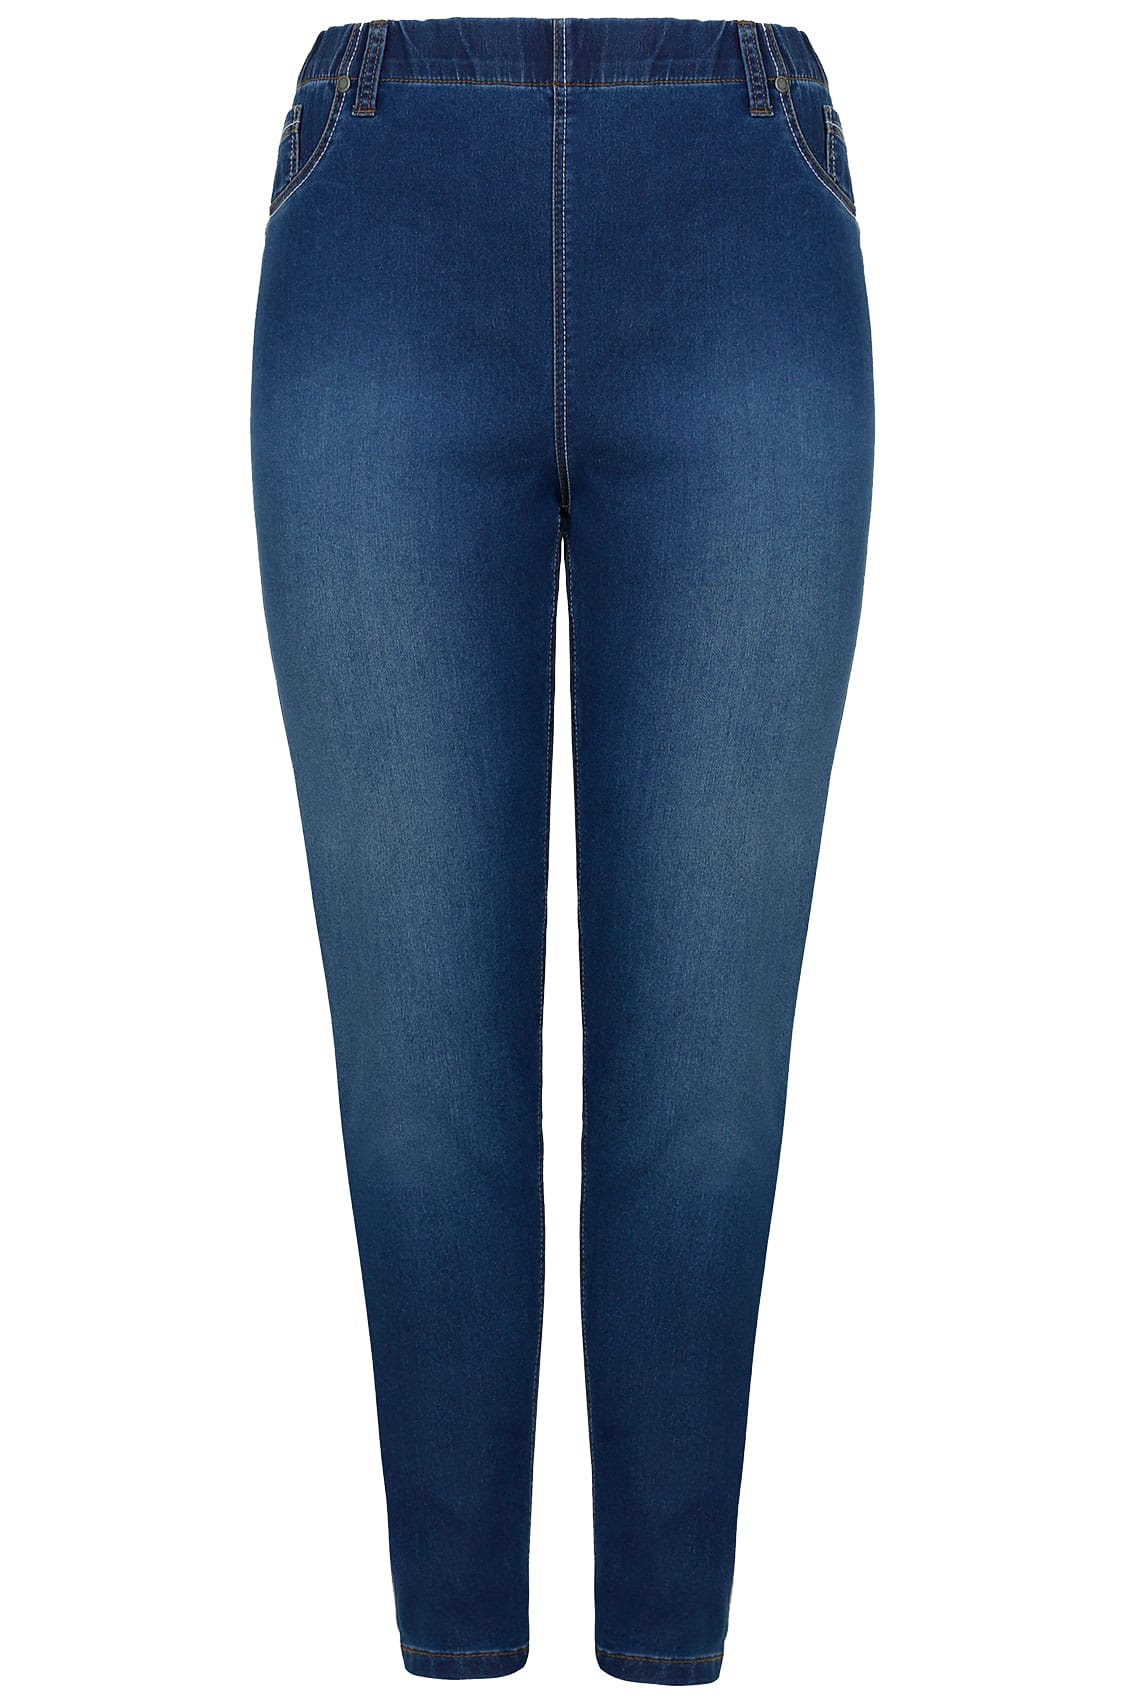 Rooms: Blue Washed Ultimate Comfort Stretch Jeggings, Plus Size